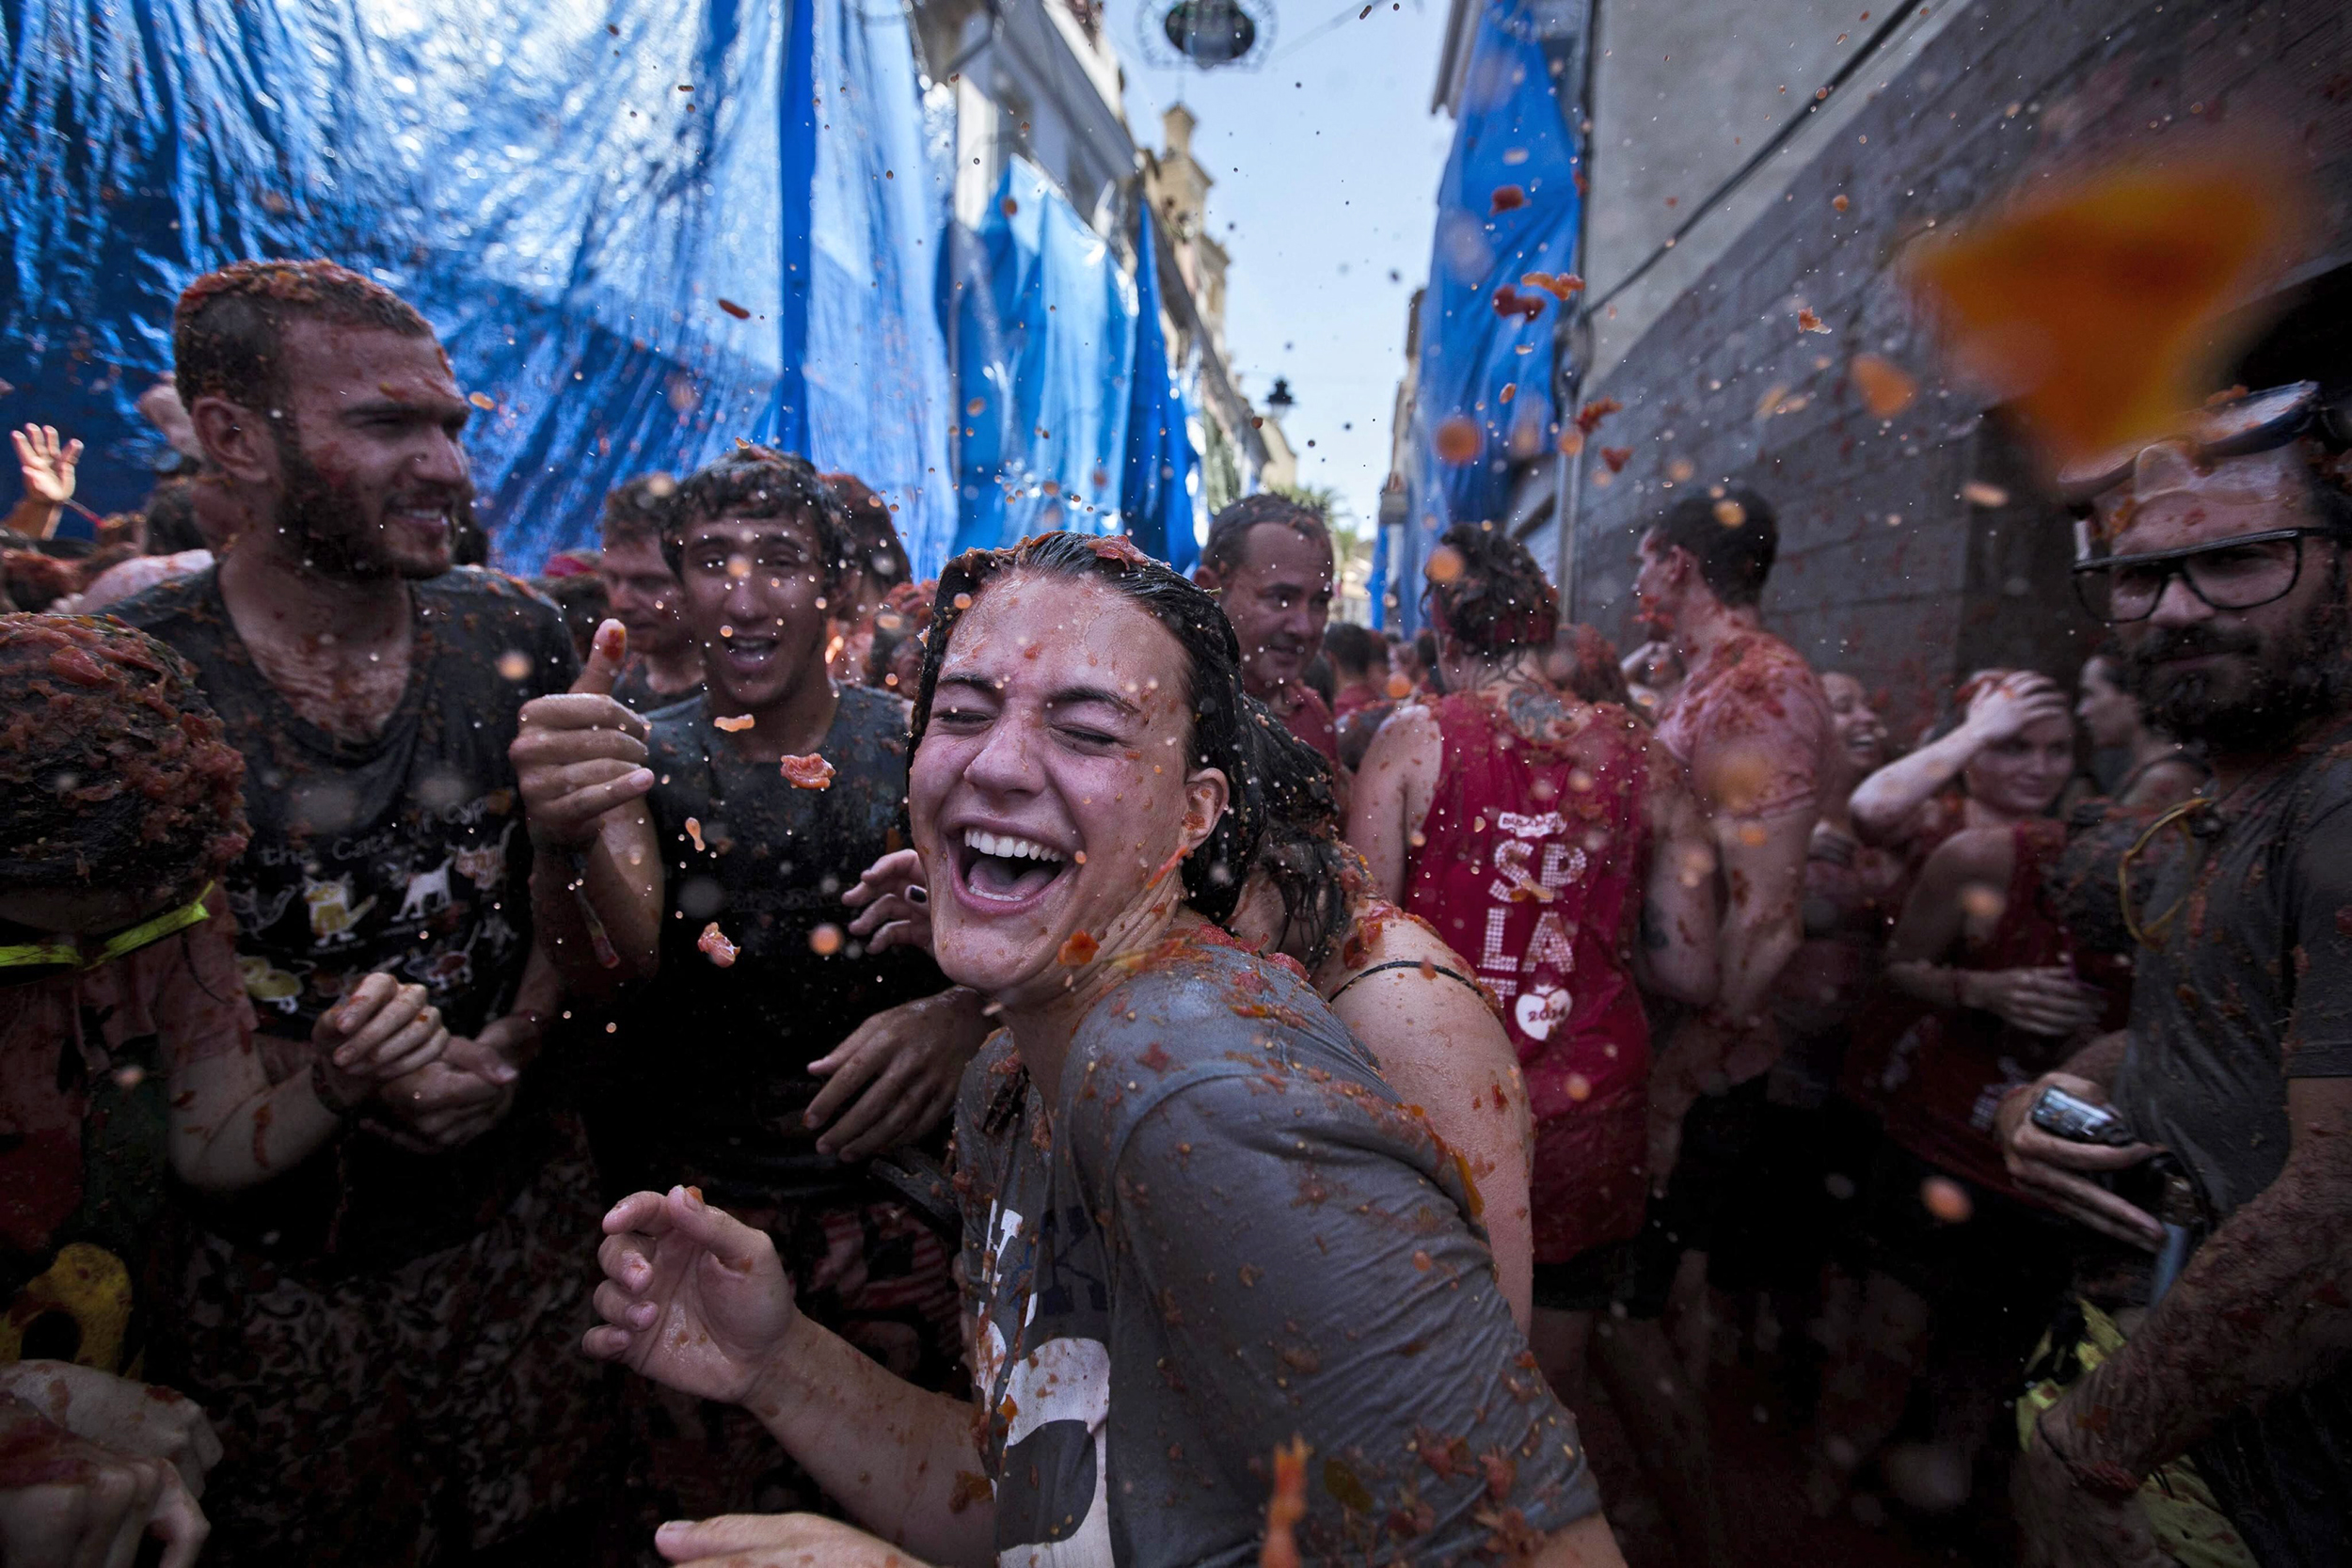 La Tomatina Festival Drenches Spanish Town In Sea Of Red